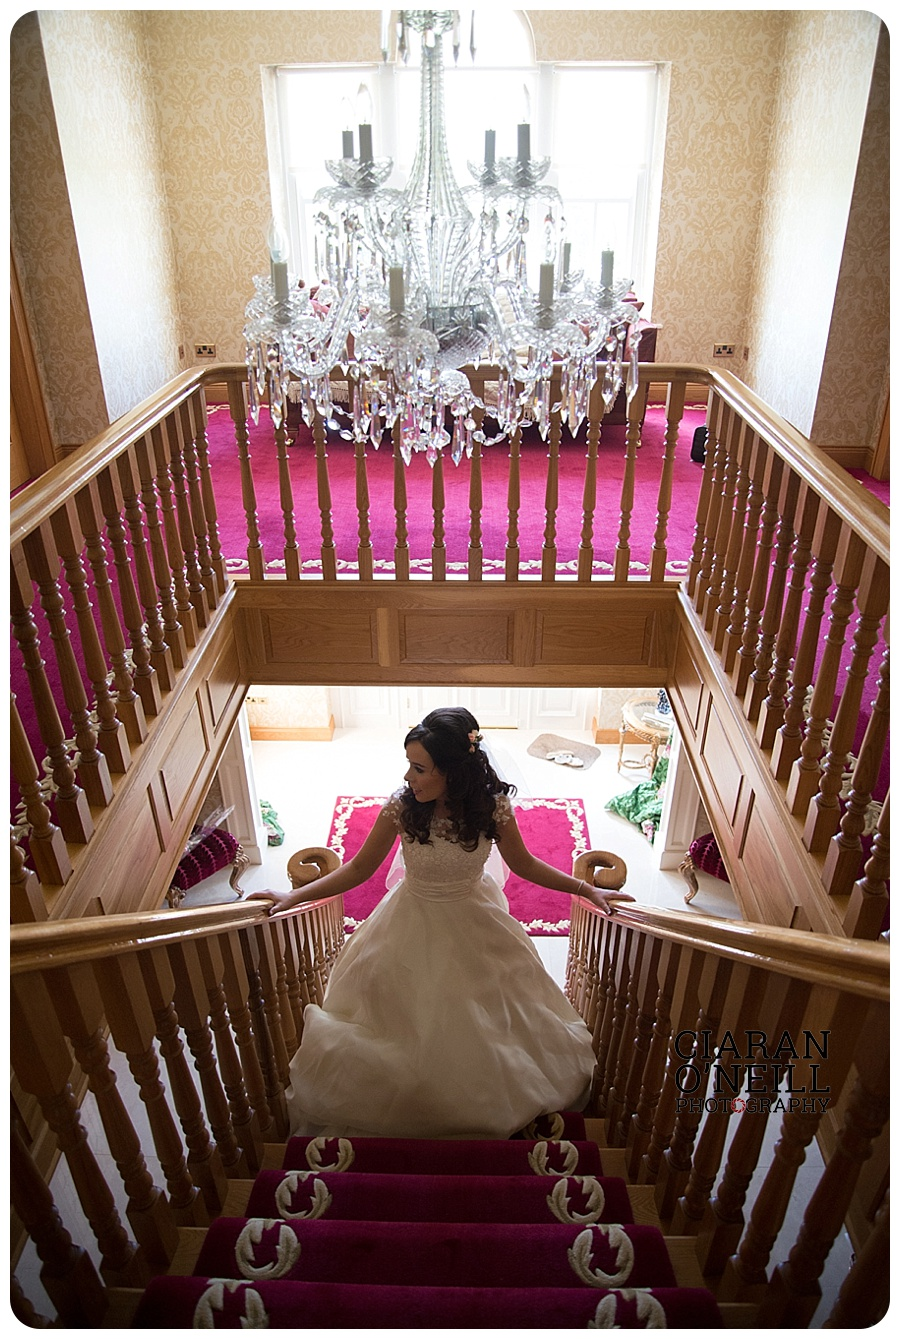 Laura & Liam's wedding at Galgorm Resort & Spa by Ciaran O'Neill Photography 06